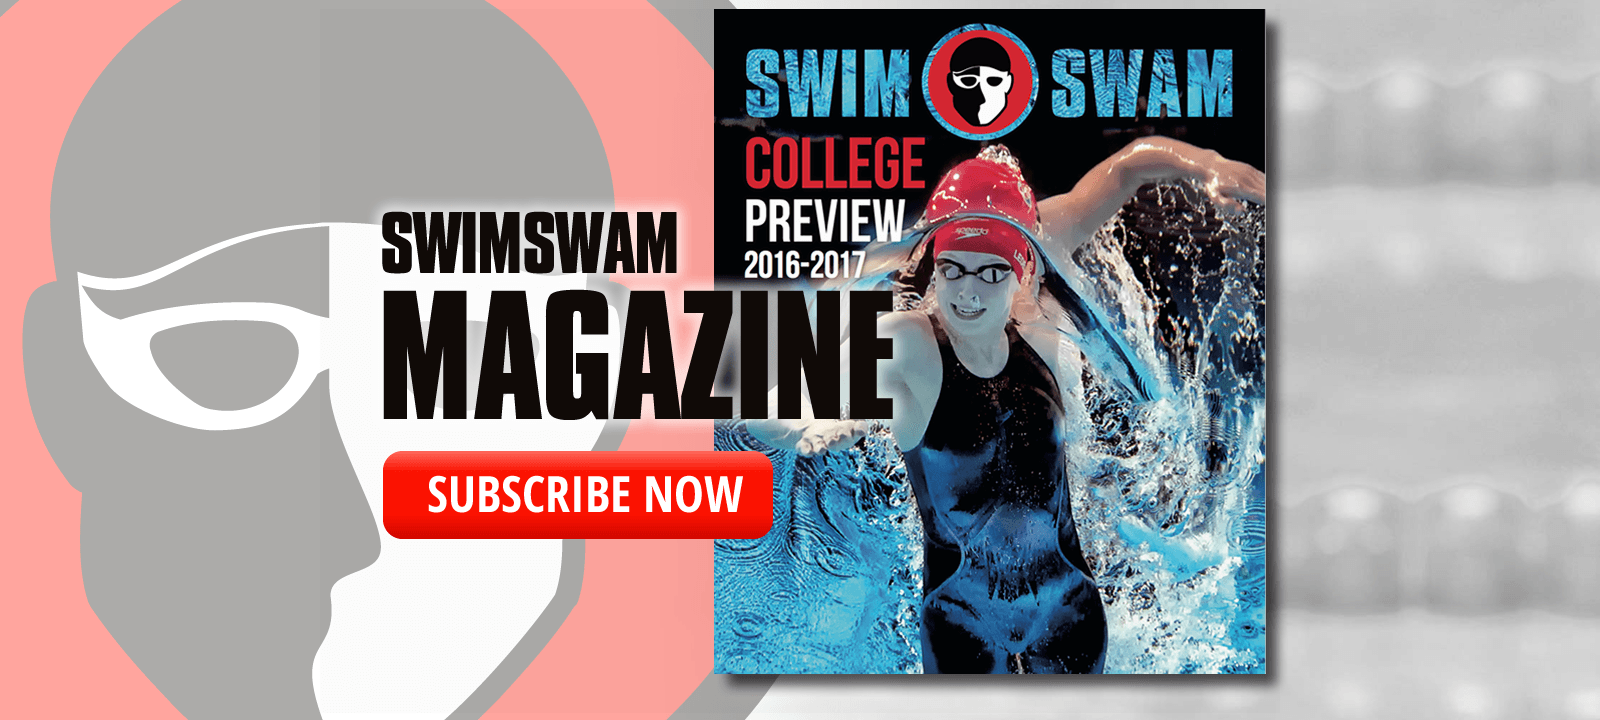 6 Reasons to Love SwimSwam Magazine and the College Preview